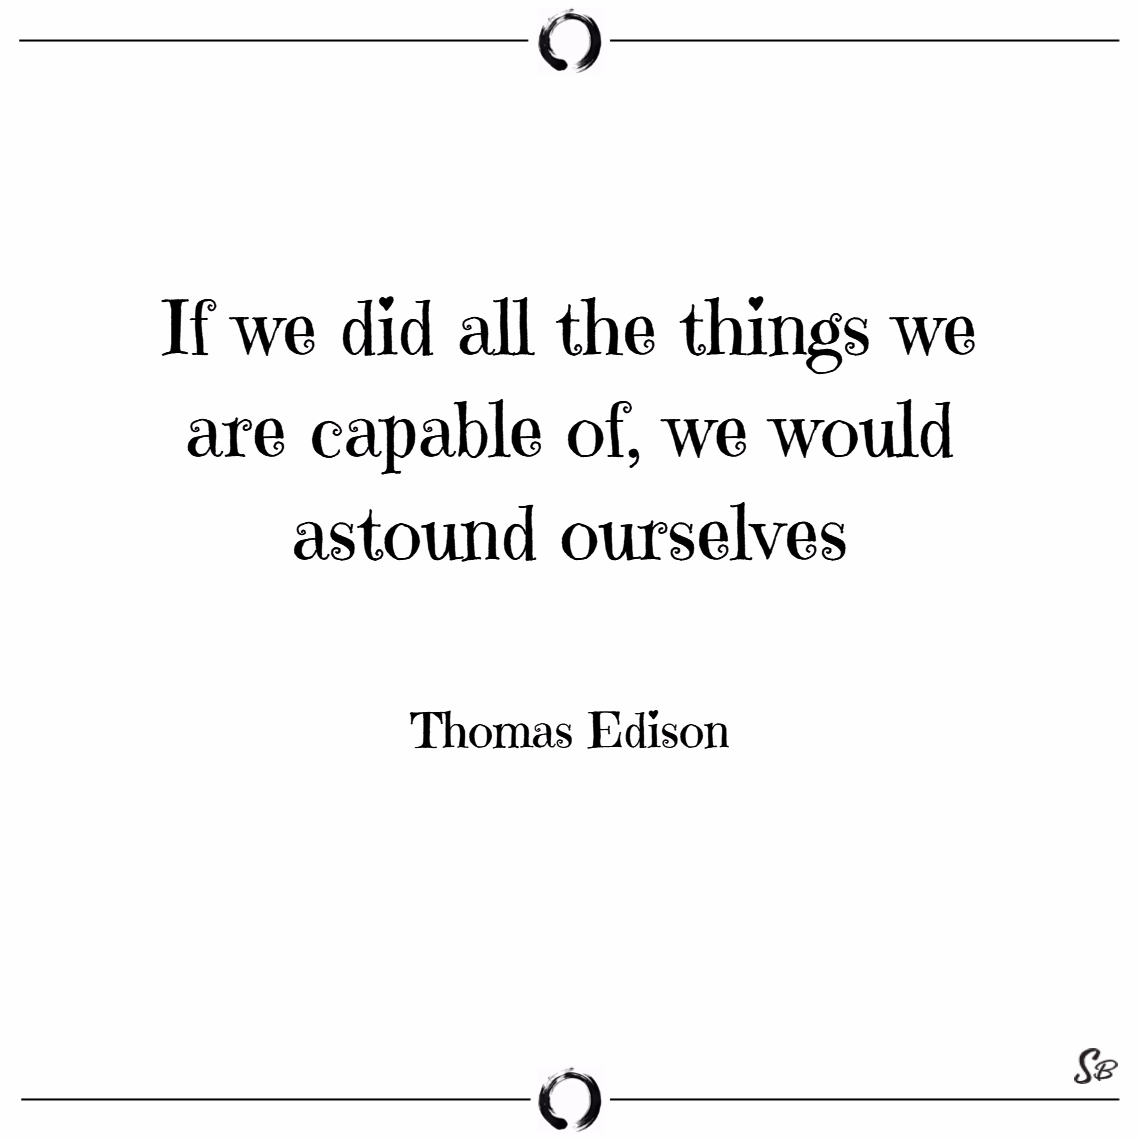 If we did all the things we are capable of, we would astound ourselves. – thomas edison words of encouragement